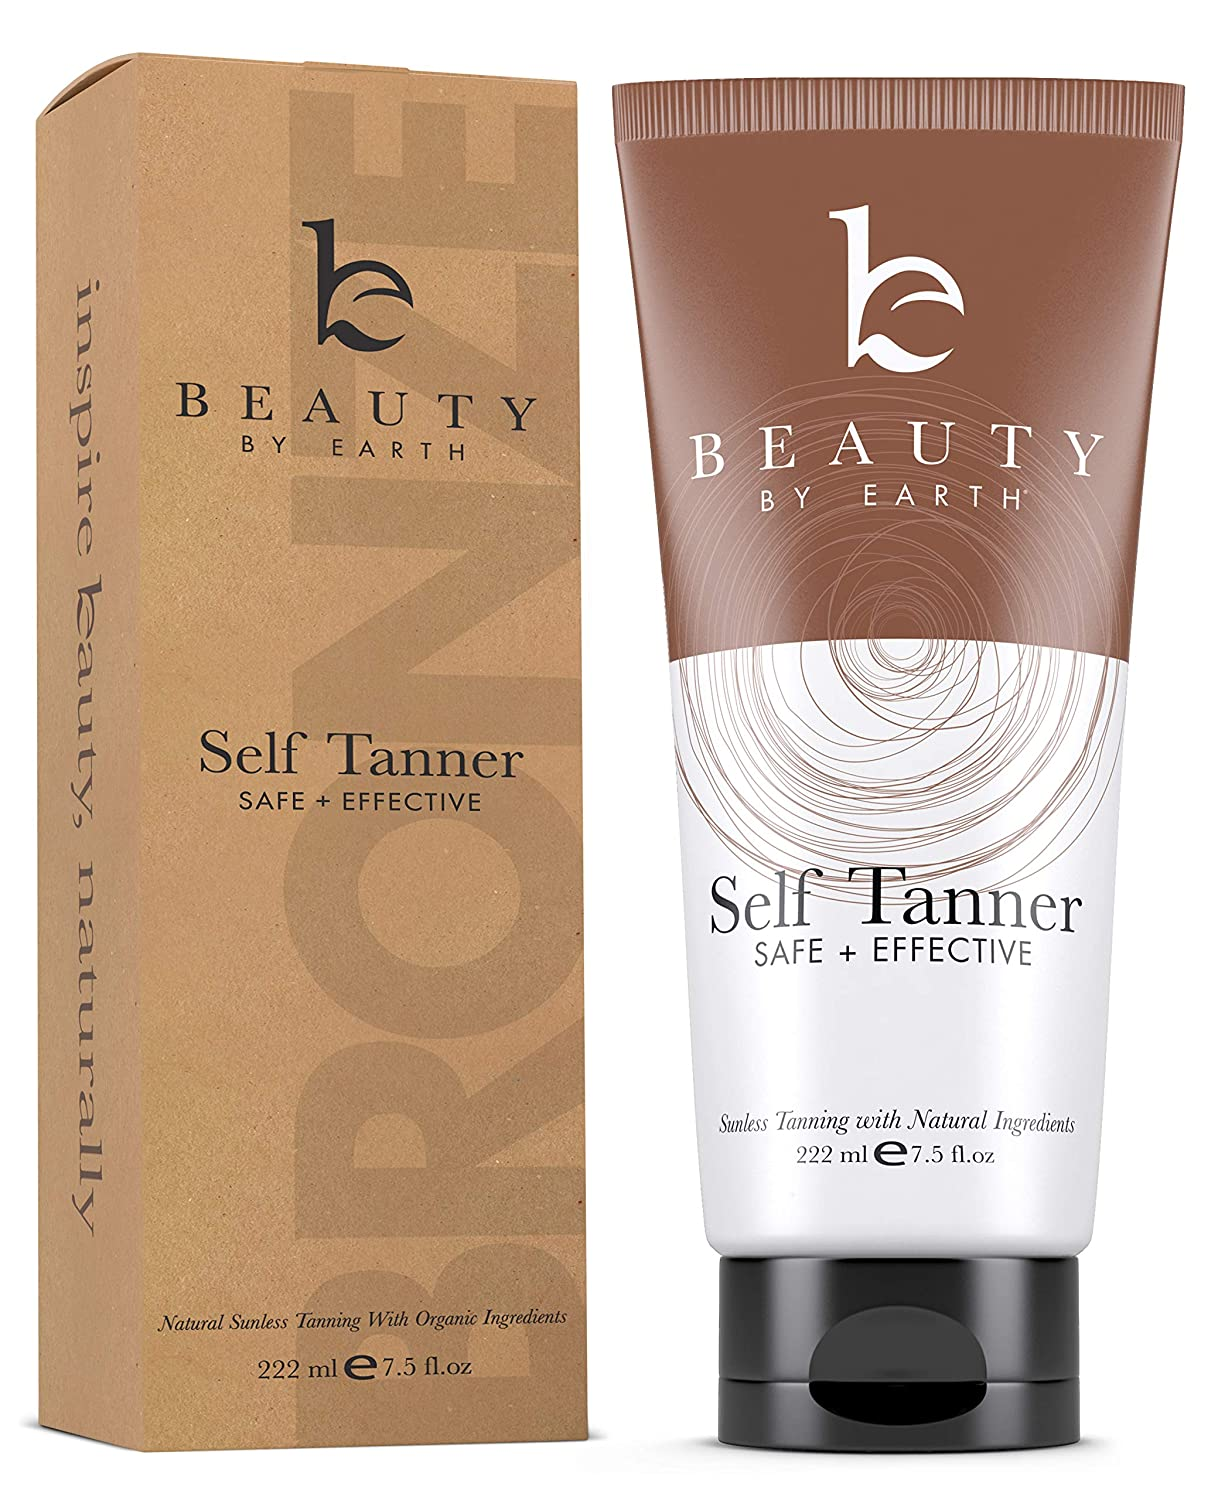 Self Tanner - With Organic Aloe Vera & Shea Butter, Sunless Tanning Lotion and Bronzer Buildable Light, Medium or Dark Tan for Natural Looking Fake Tan, Self Tanners Best Sellers (7.5oz) : Beauty